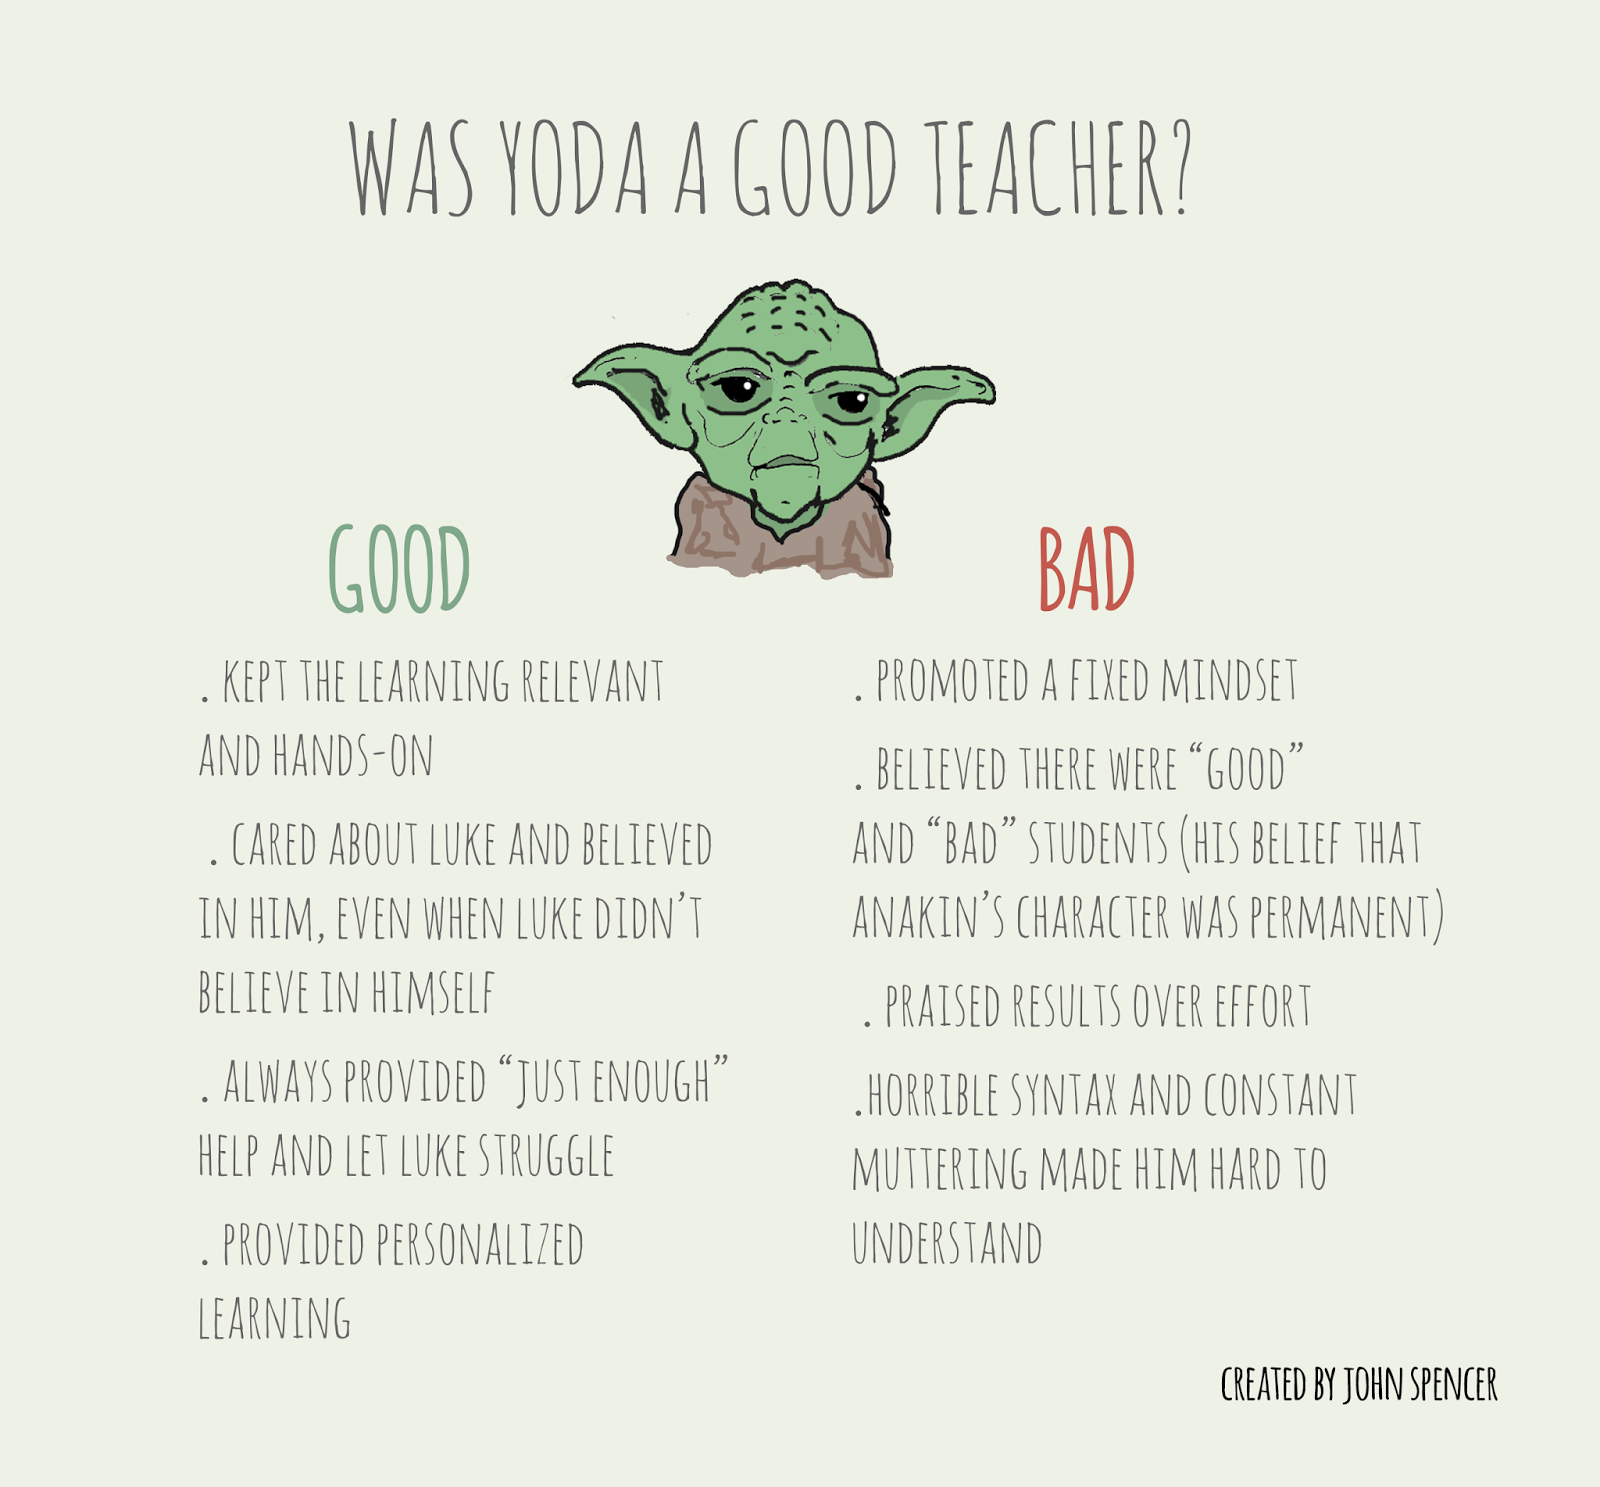 was yoda a good teacher john spencer why yoda was an bad teacher